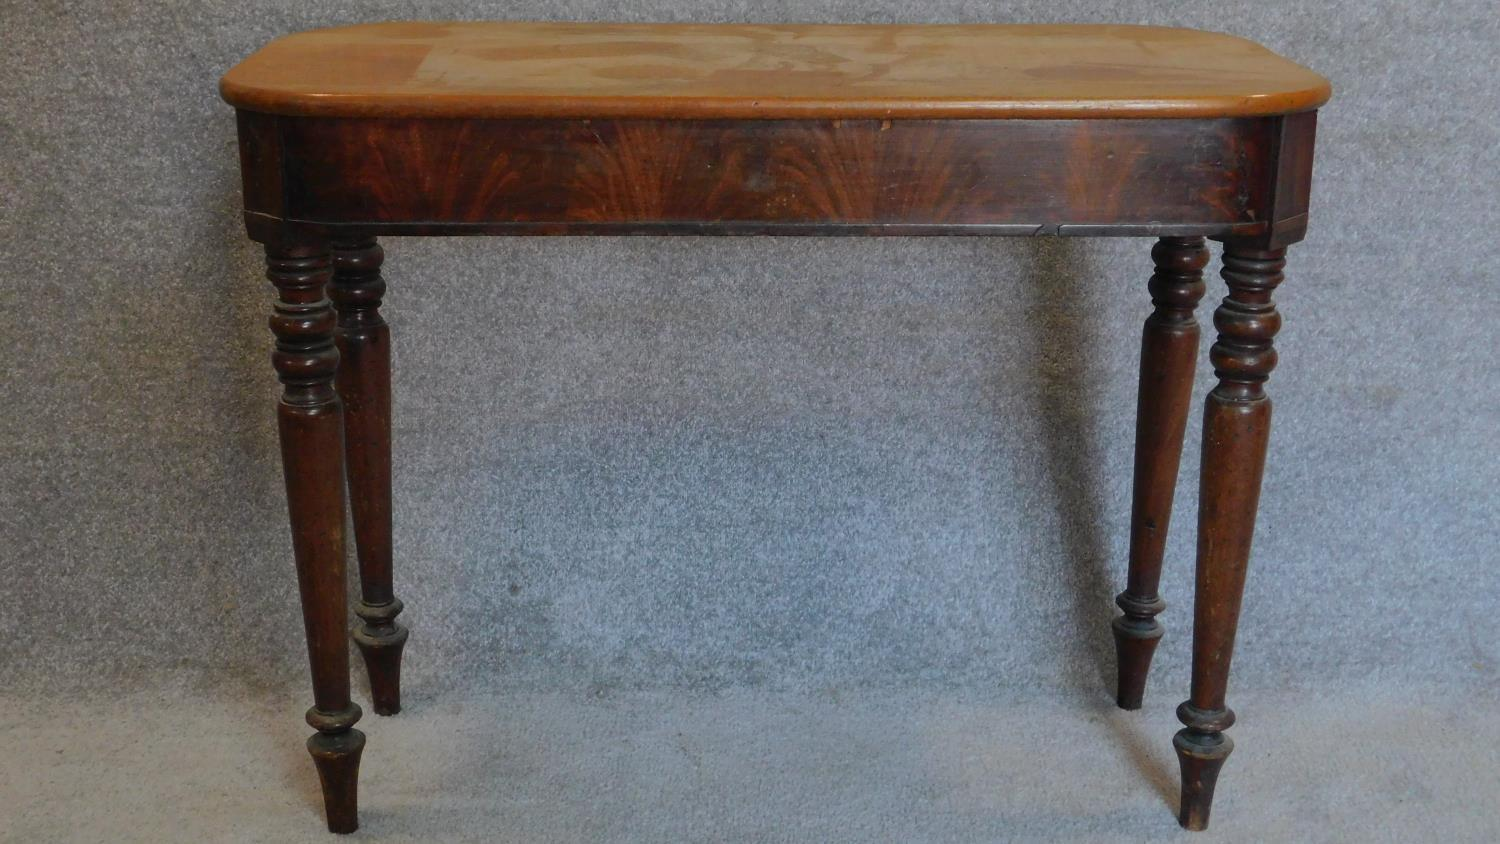 Lot 16 - A 19th century mahogany side table with associated top. 70x94x46cm